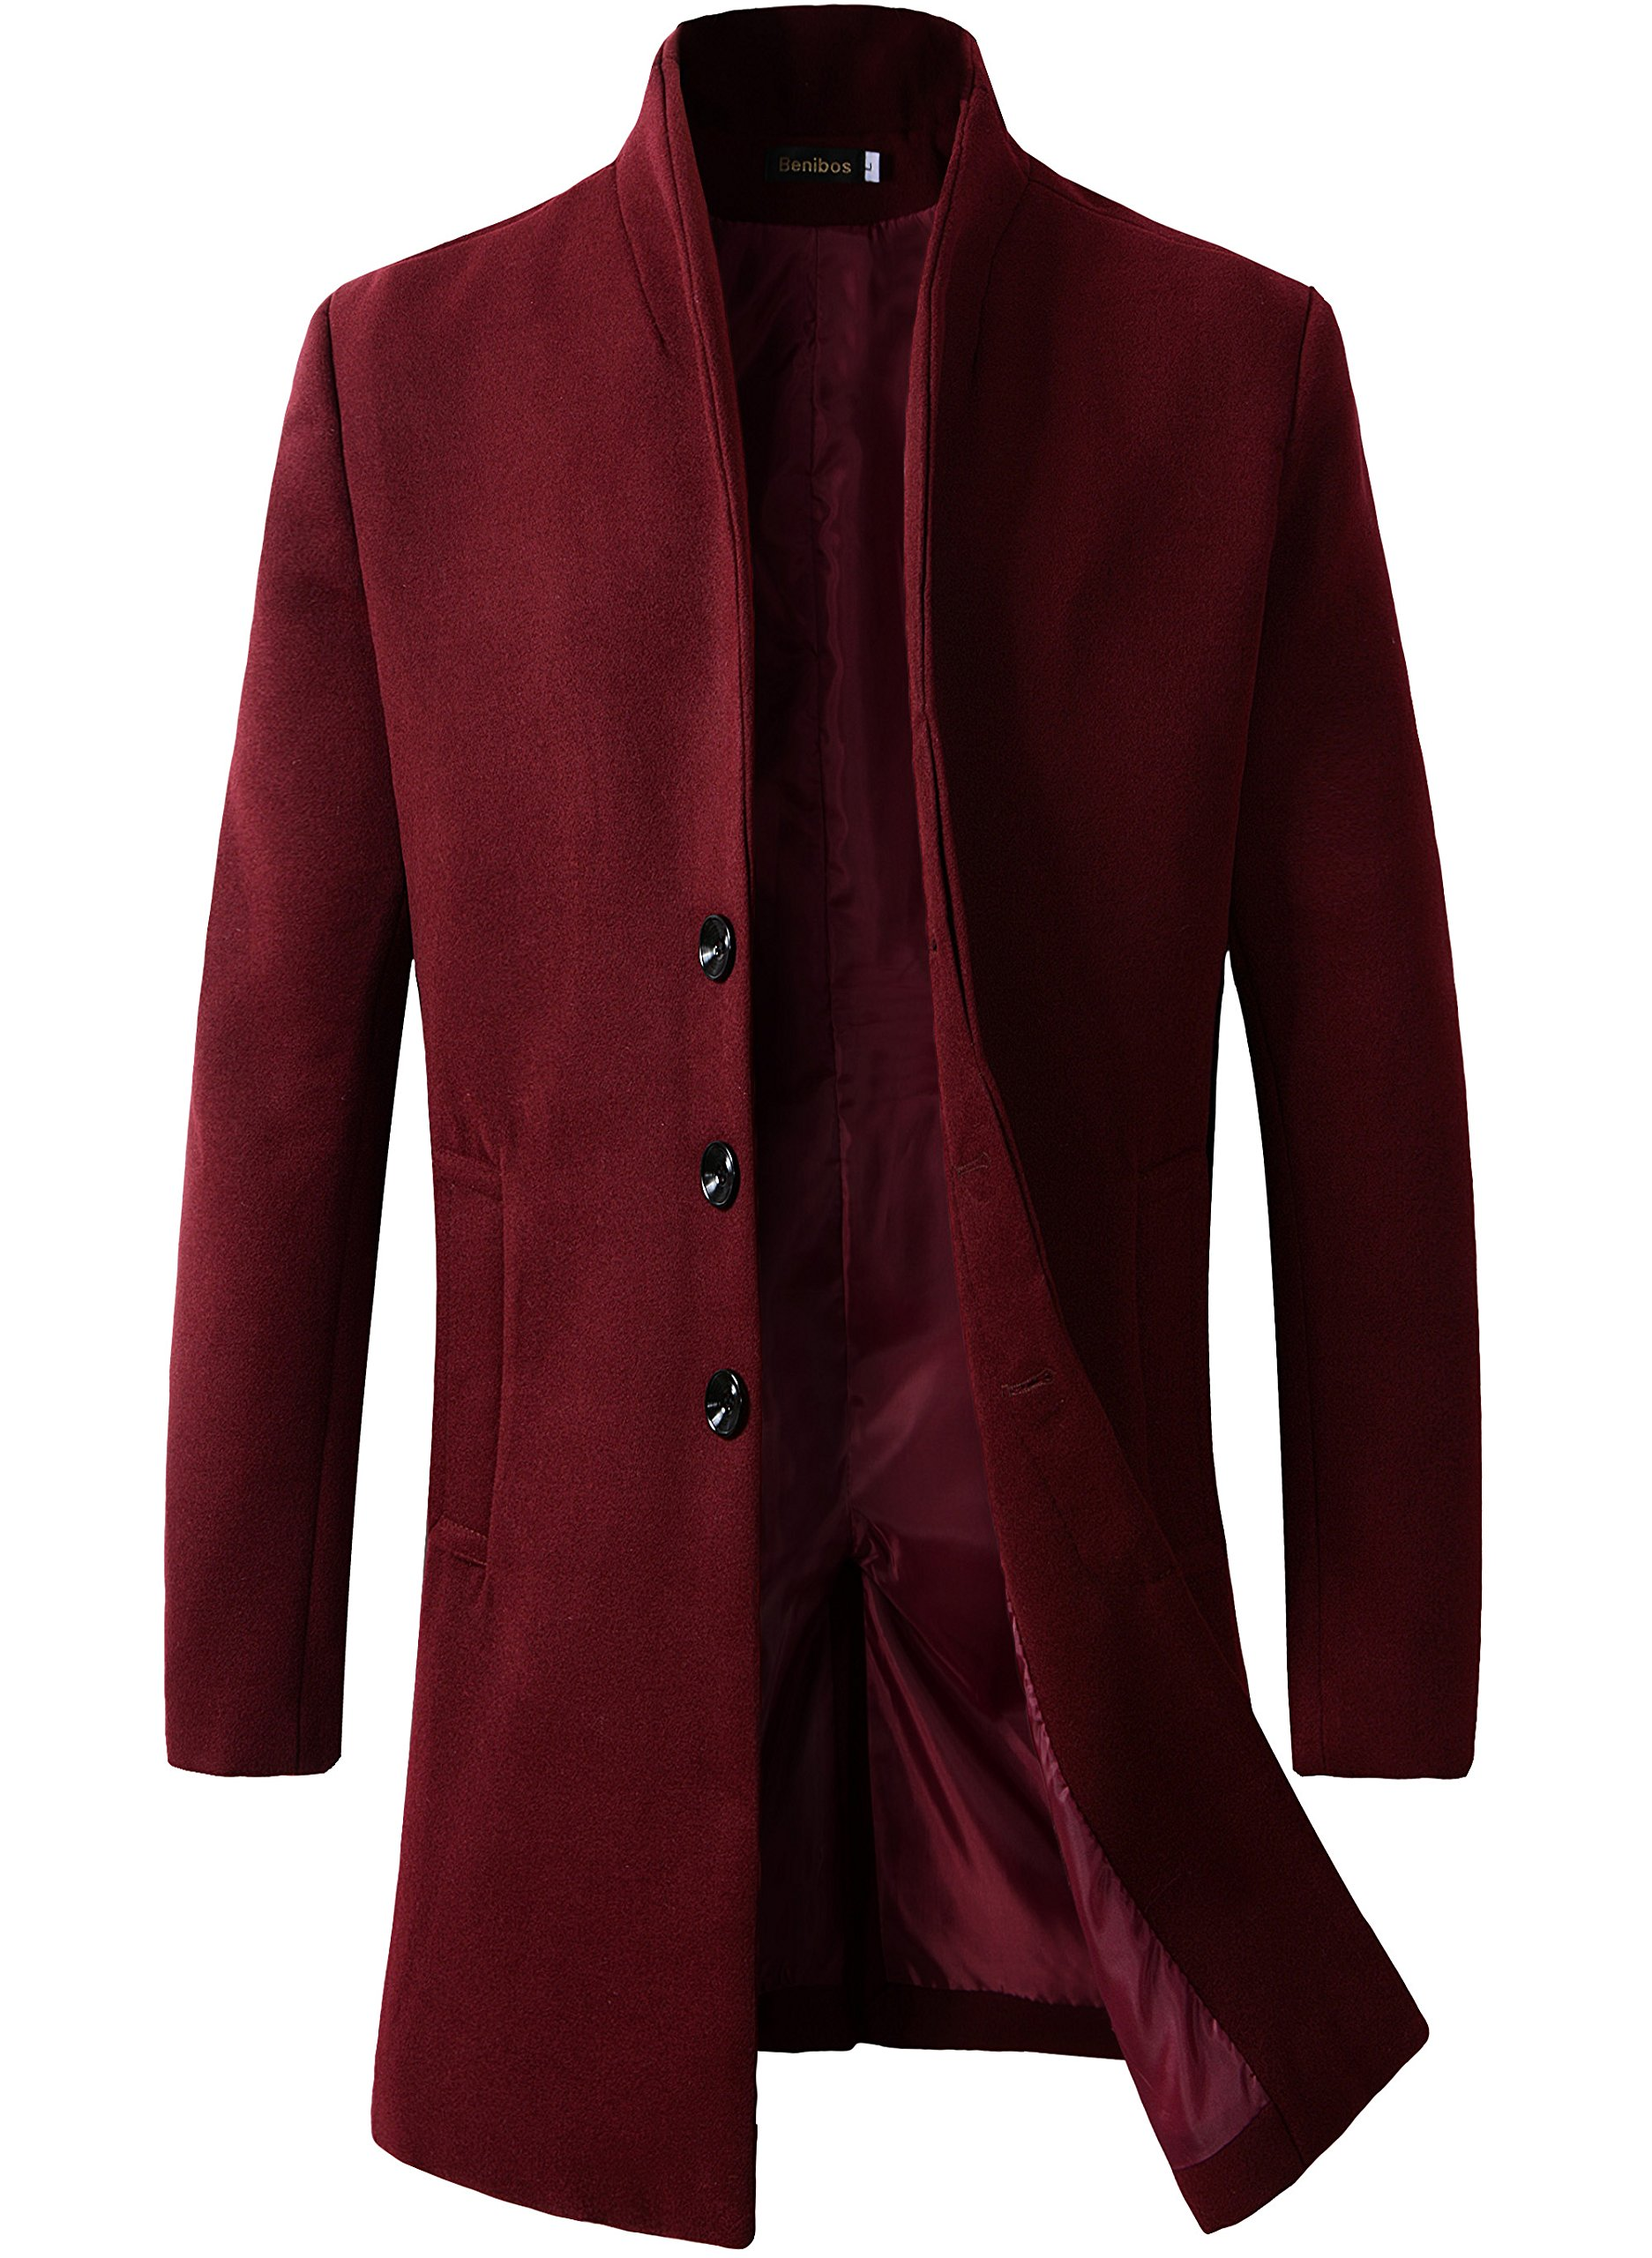 Benibos Men's Trench Coat Winter Long Jacket Button Closer Overcoat (S, 168Burgundy) by Benibos